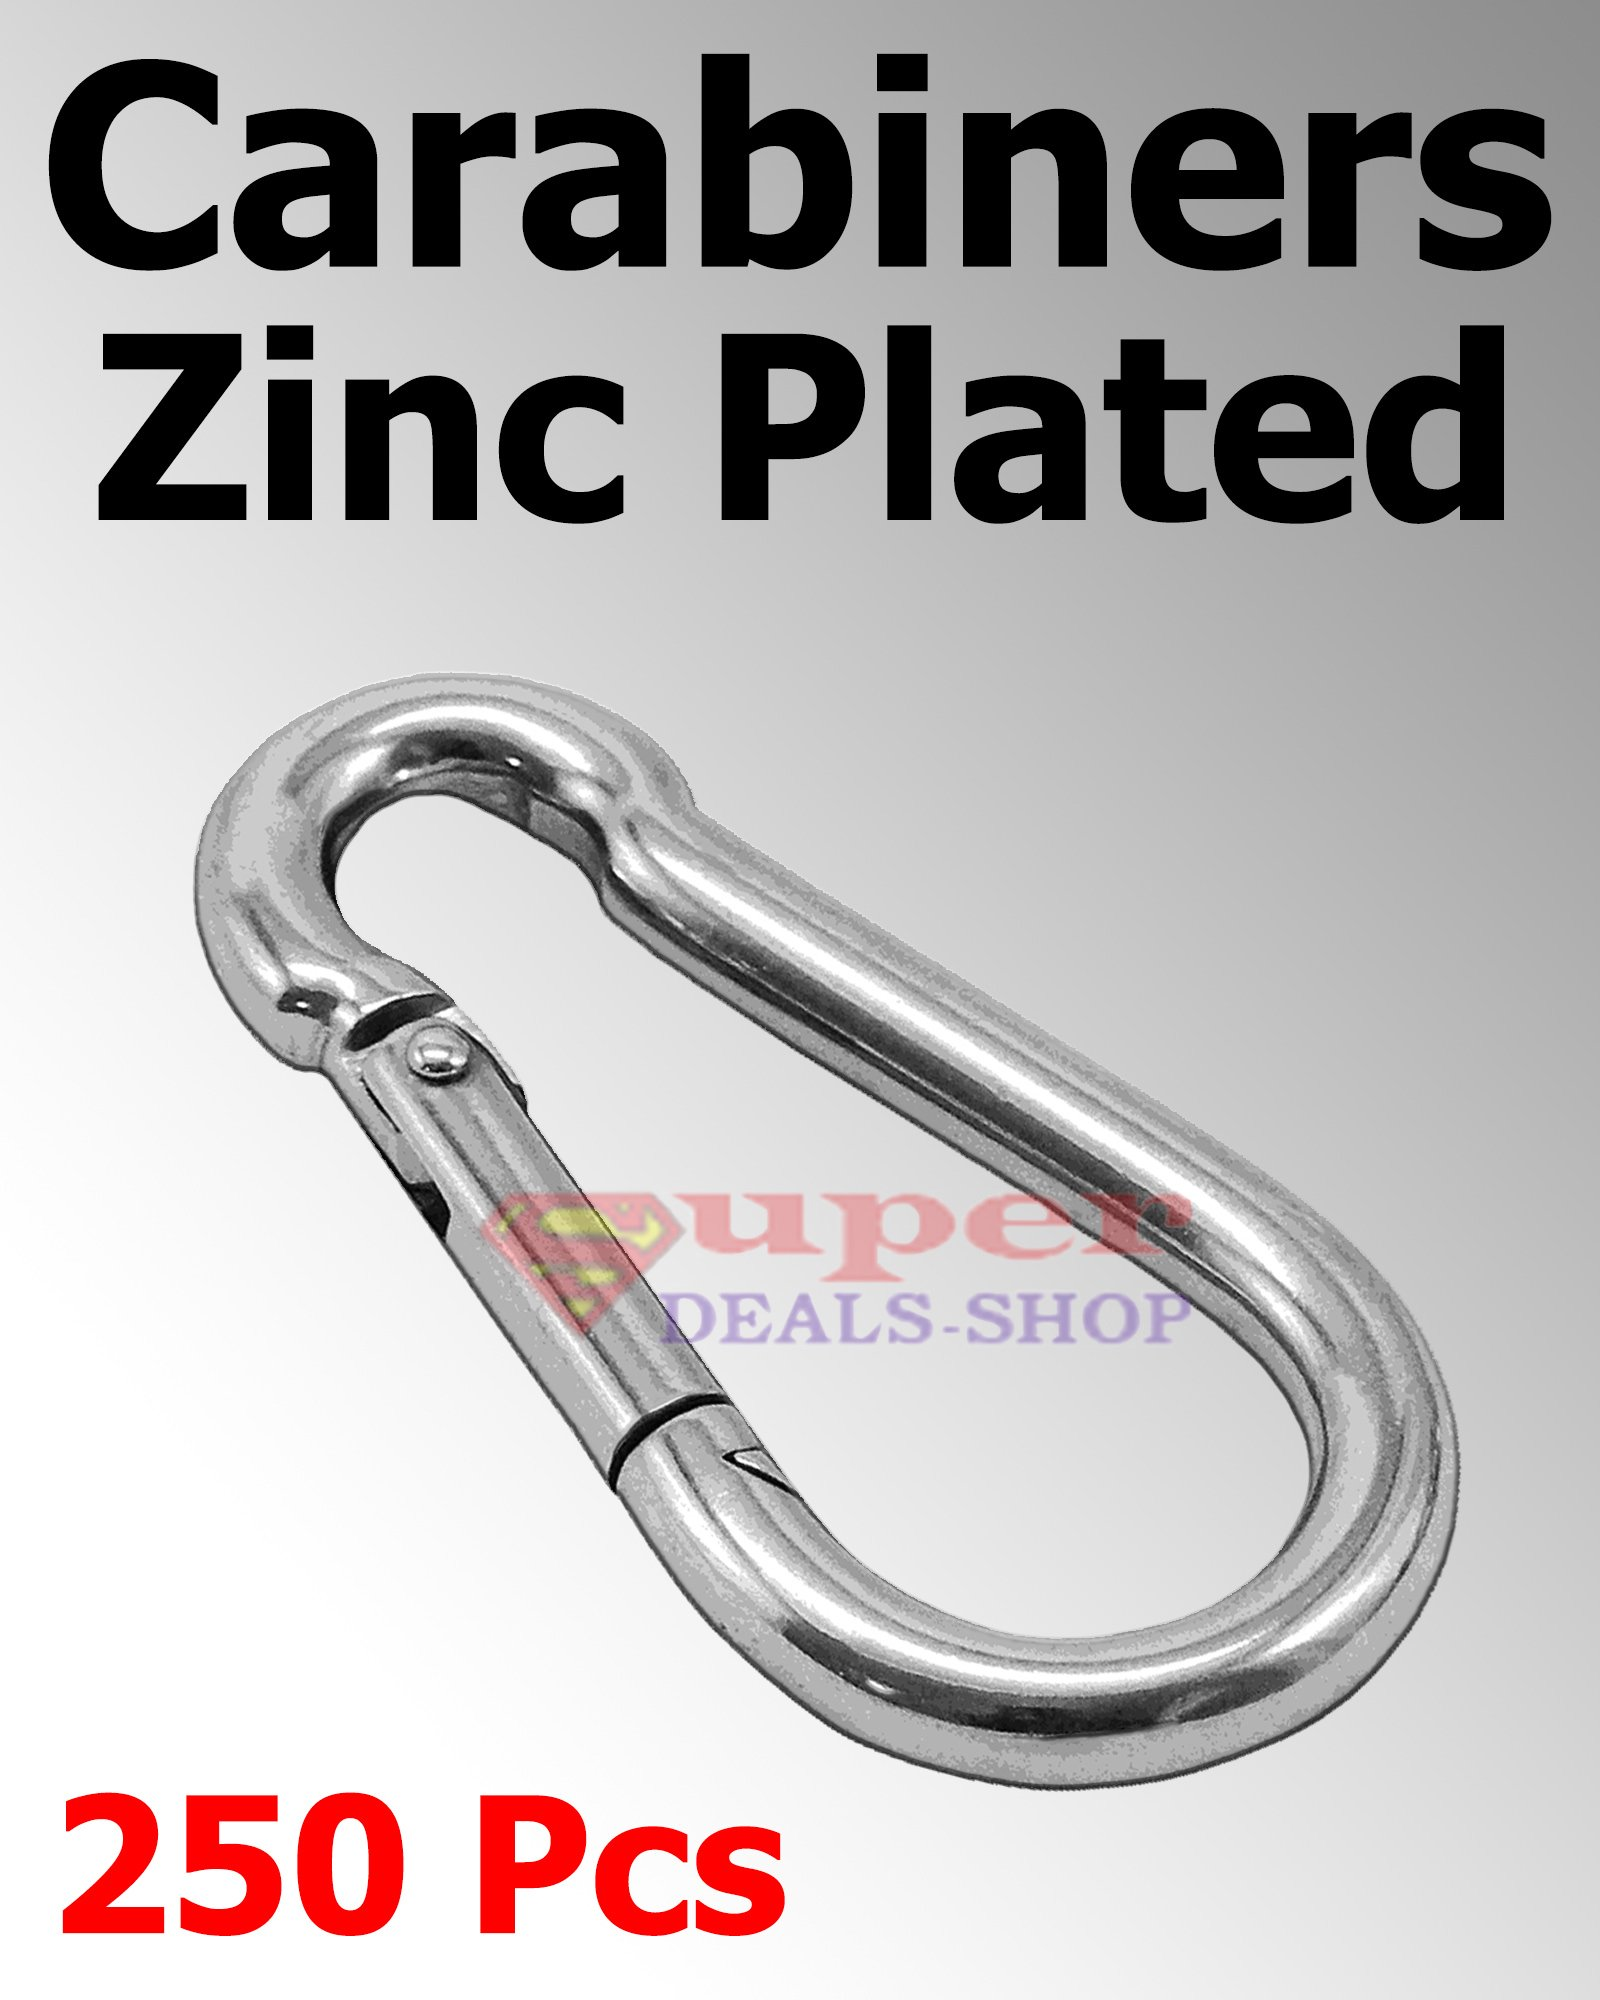 250 Pcs 5/16'' Snap Hooks Carabiners Zinc Plated Spring Hooks Heavy Duty Choose Size/Quantity In Listing Made in USA Super-Deals-Shop by S-D-S Replacement